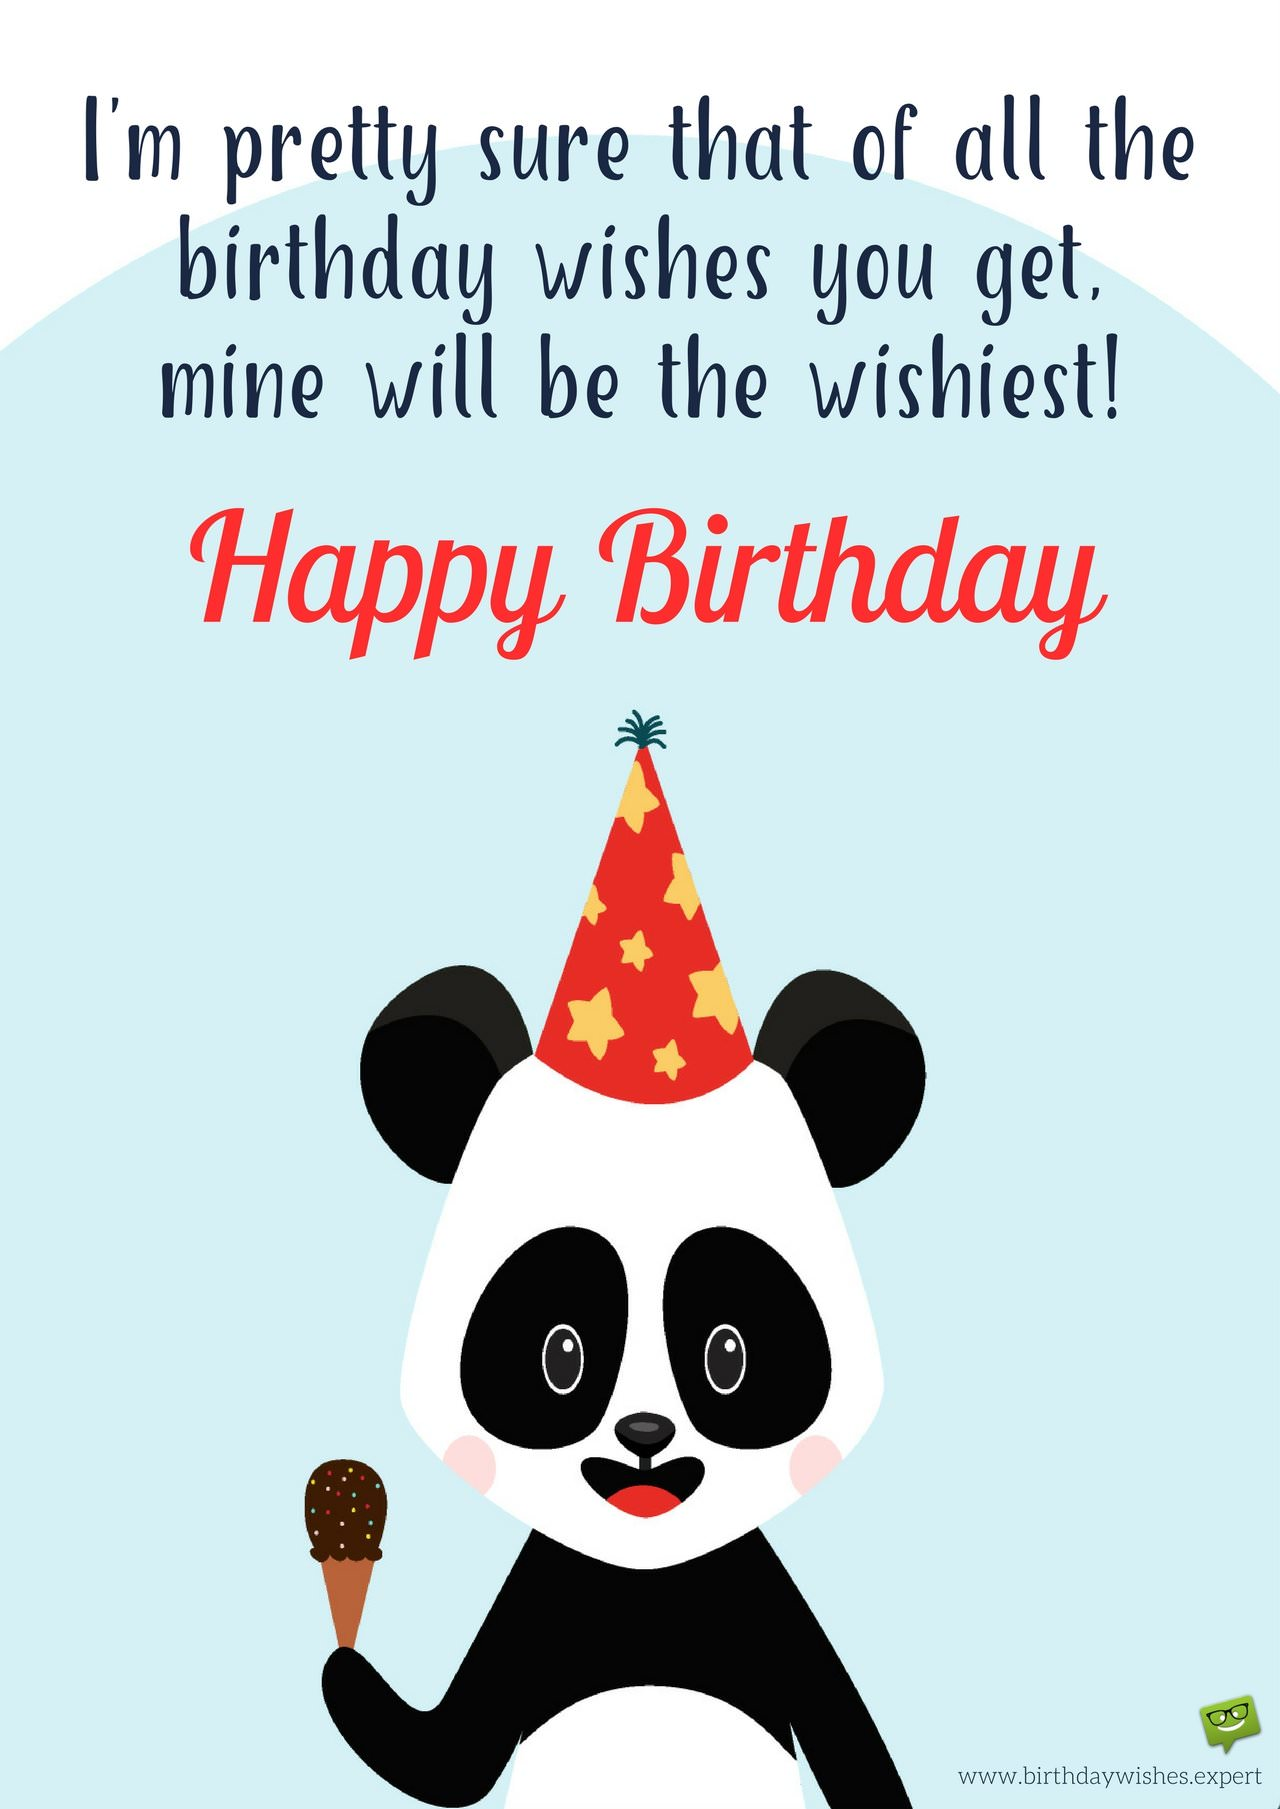 funny birthday message The Funniest Wishes to Make your Wife Smile on her Birthday funny birthday message